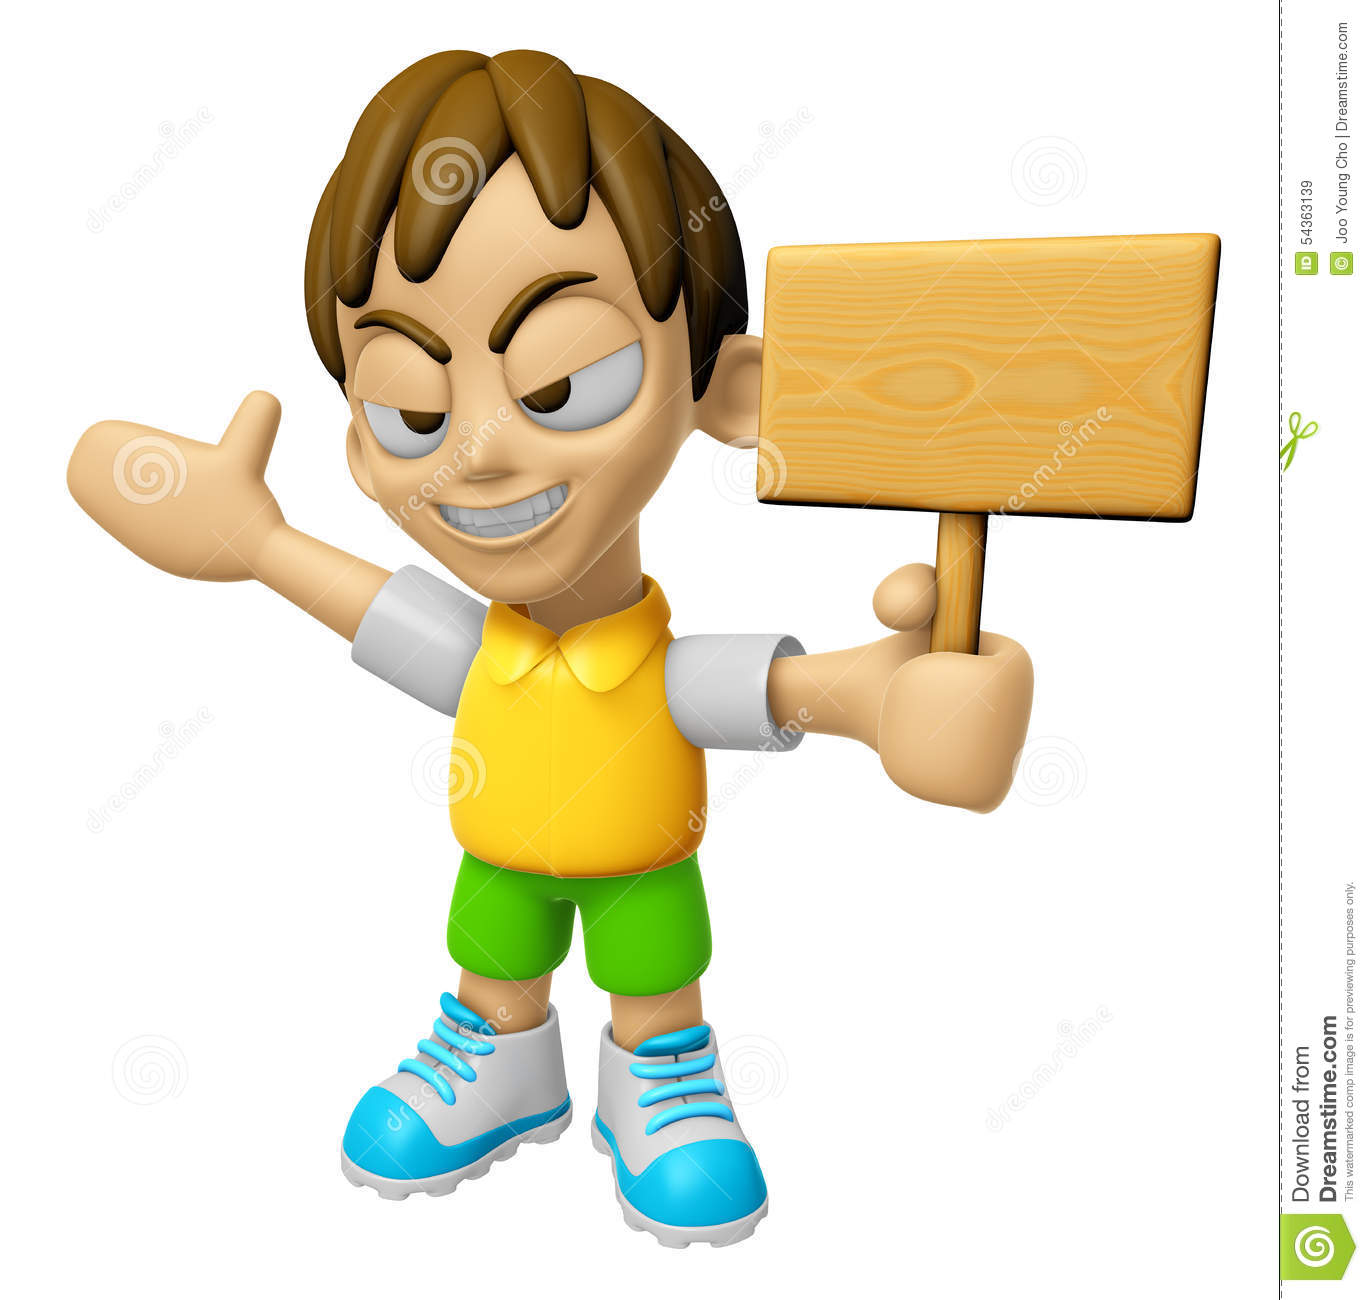 Character Design As A Career : Royalty free stock images d child mascot the hand is